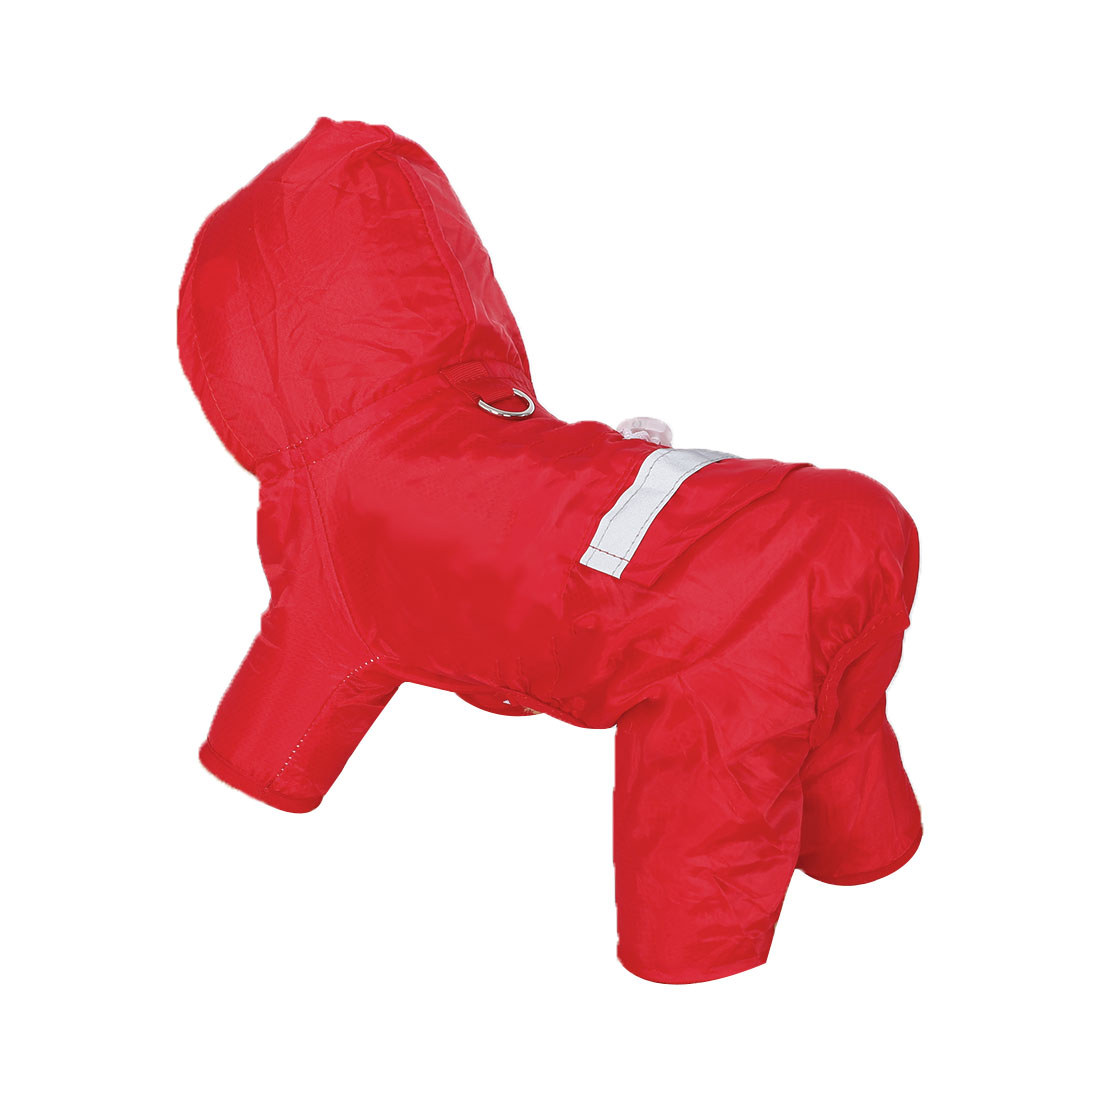 Pet Dog Raincoat Polyester Wind-resistant Rain Chothes for Warmth Red M